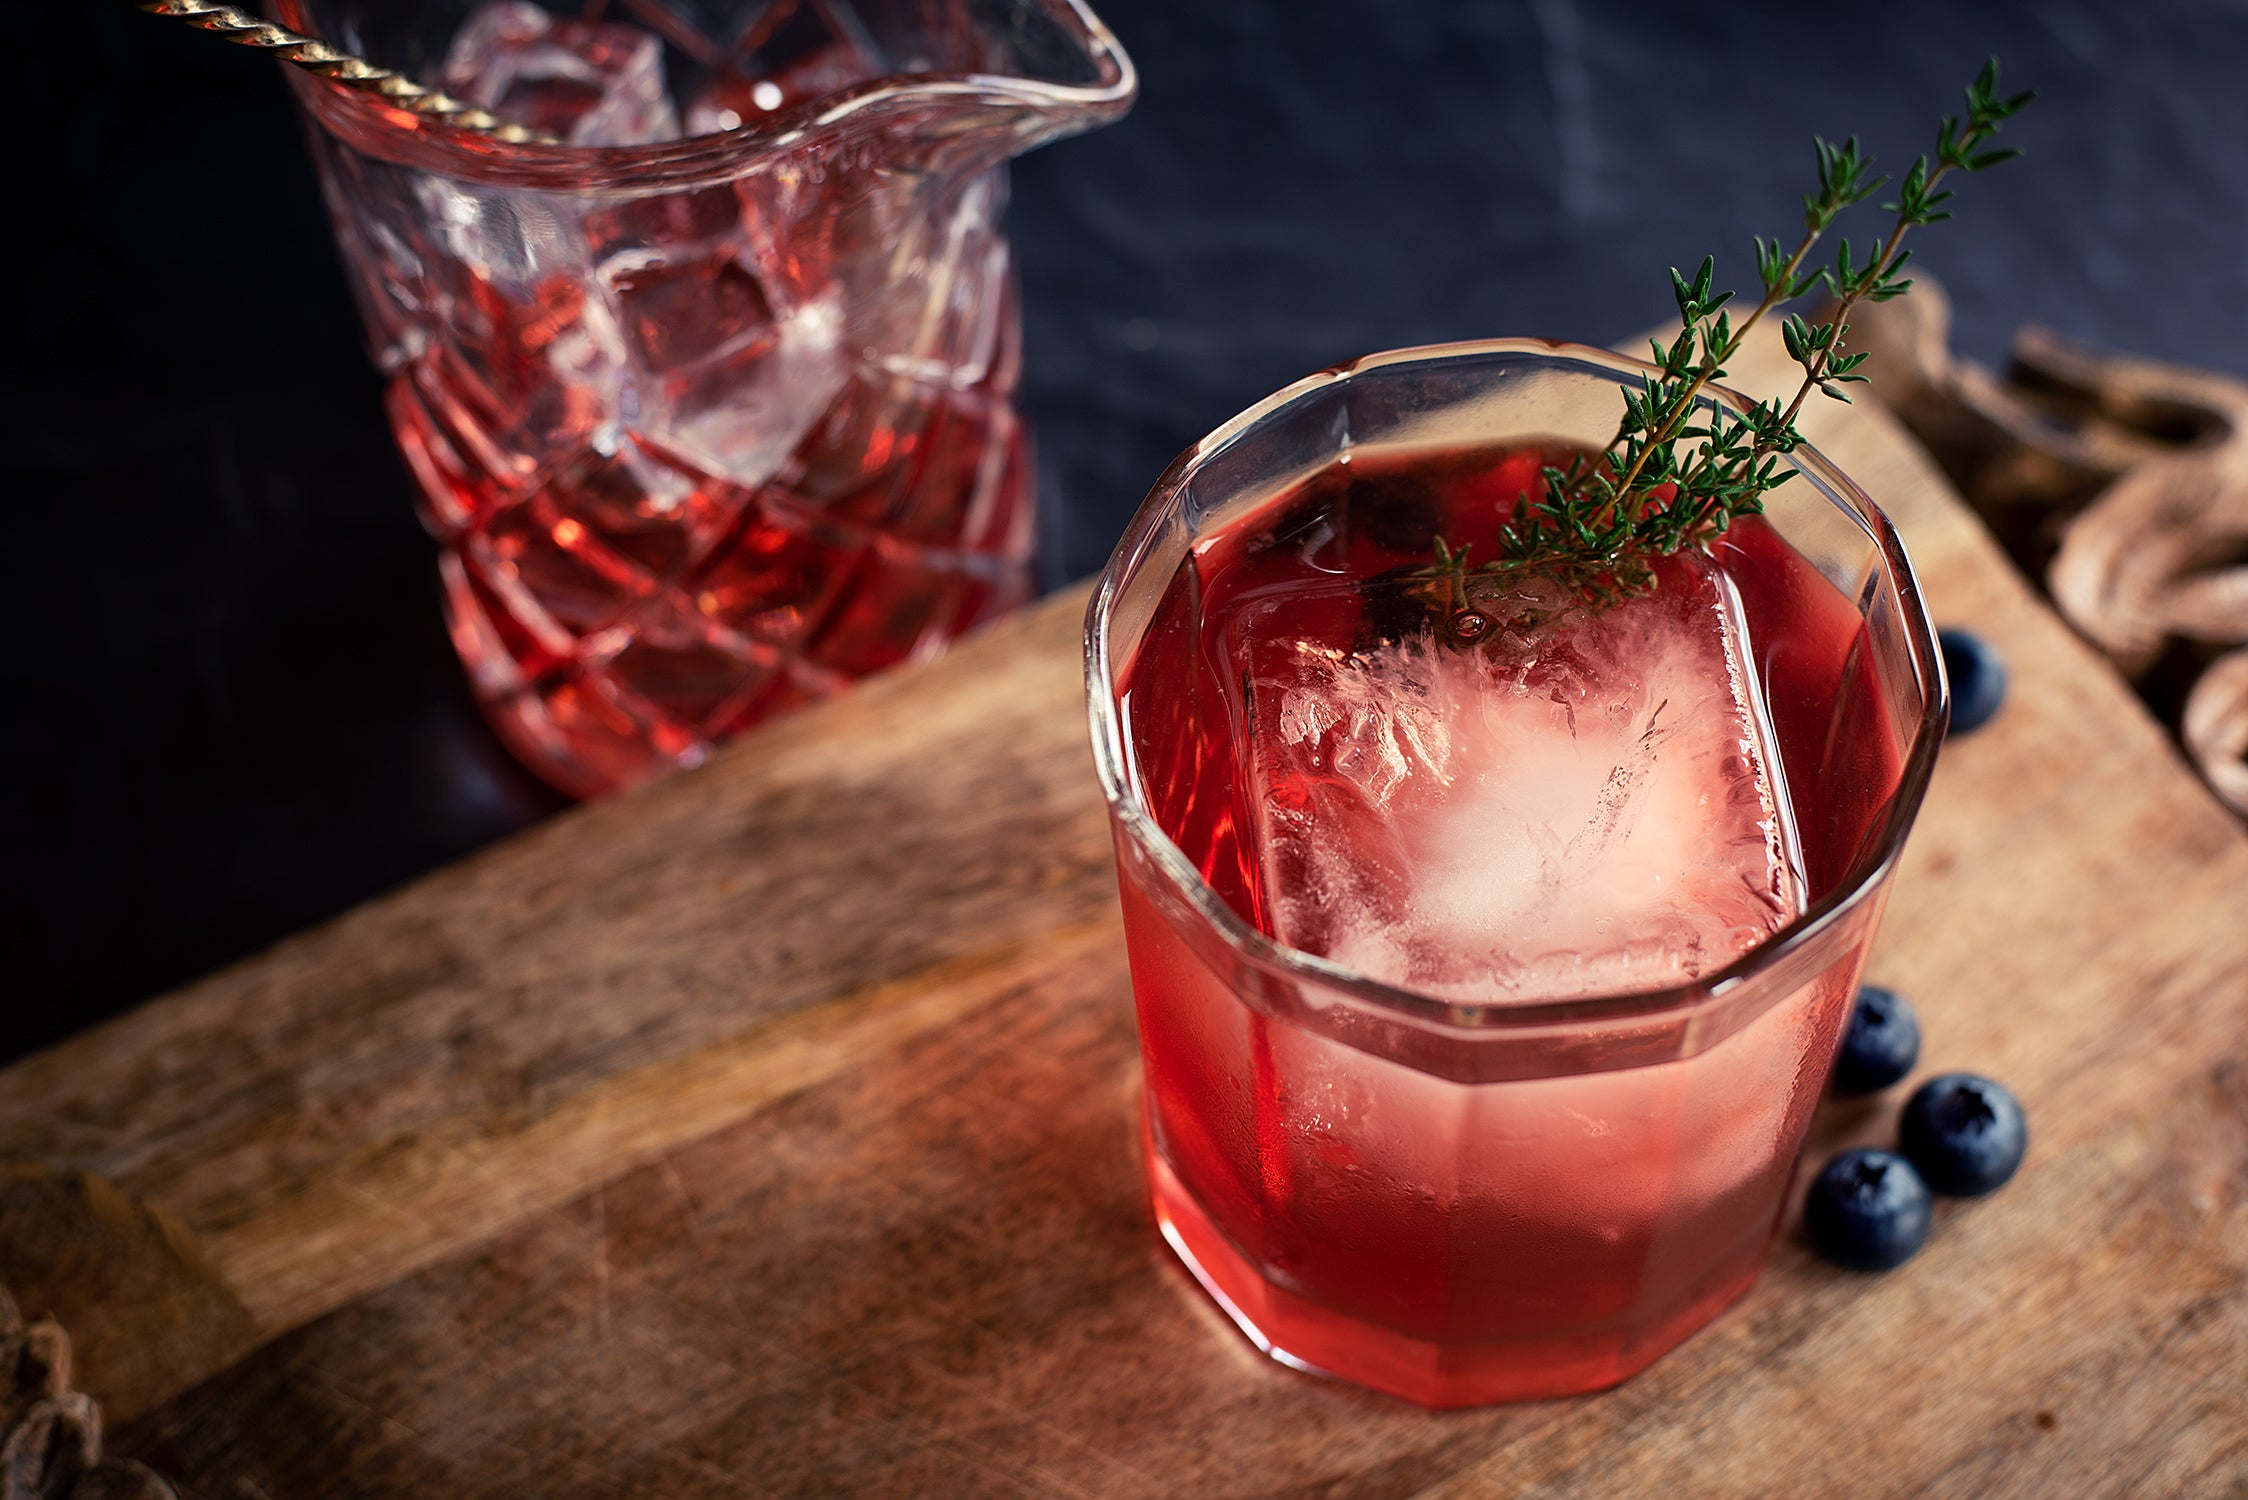 Smoky Negroni with Thyme and Blueberry